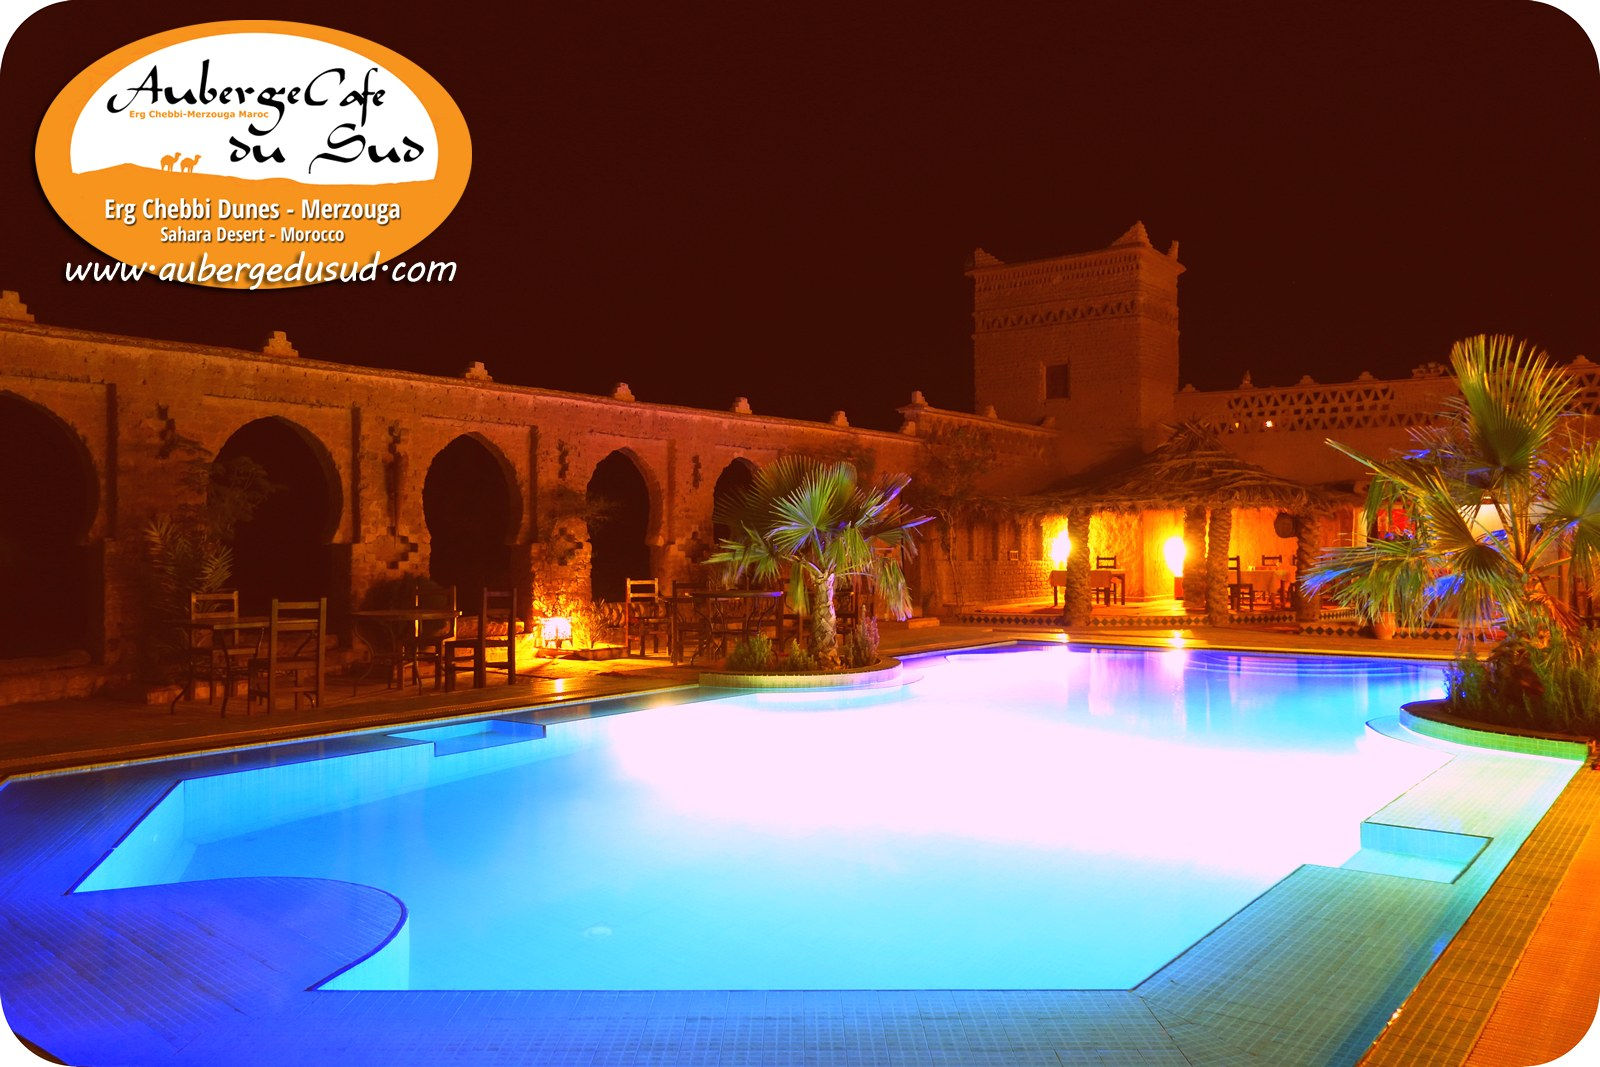 HOTEL SWIMMING POOL MOROCCO